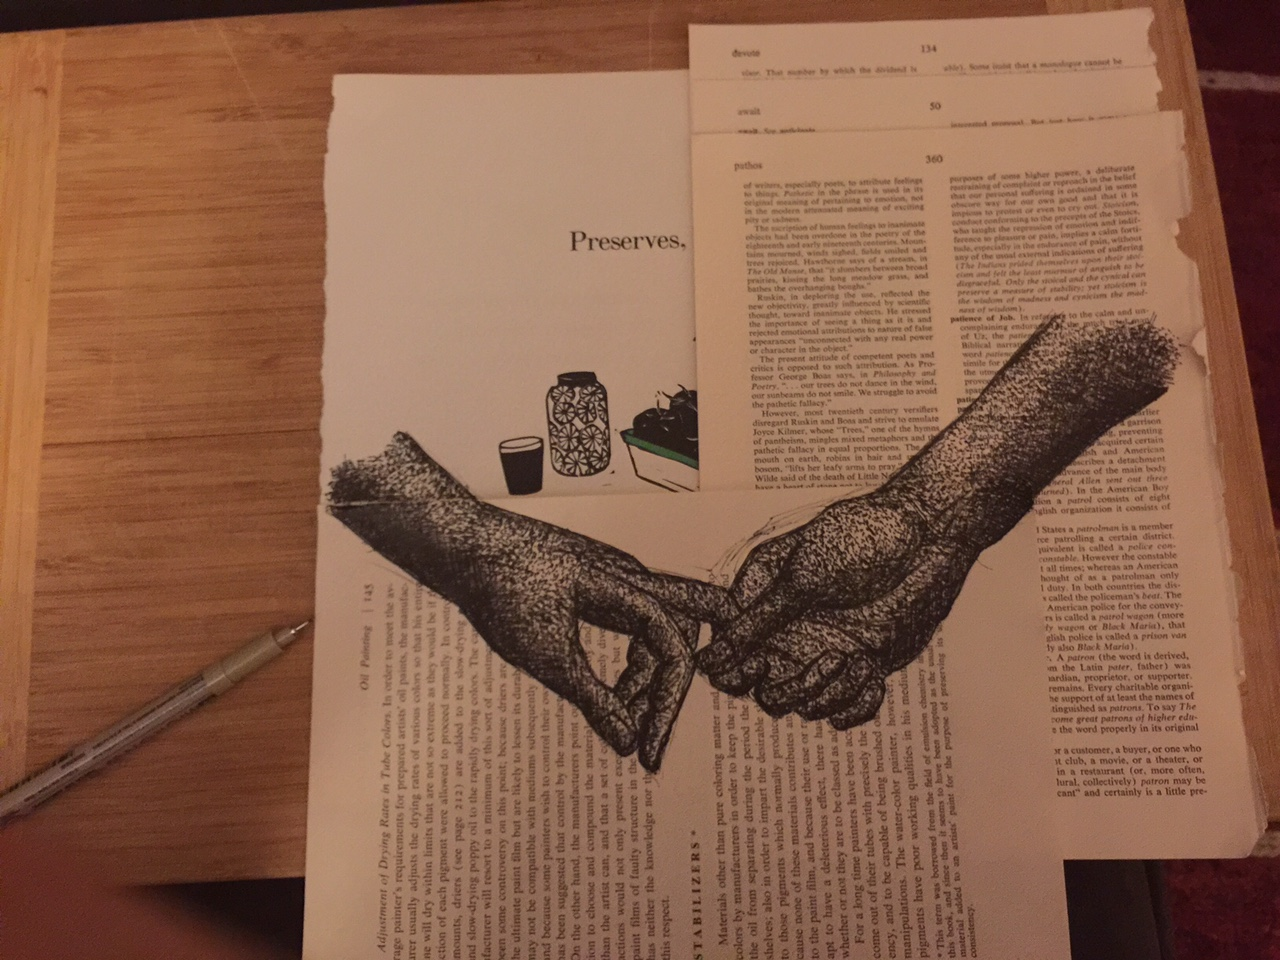 Hands drawn on book pages